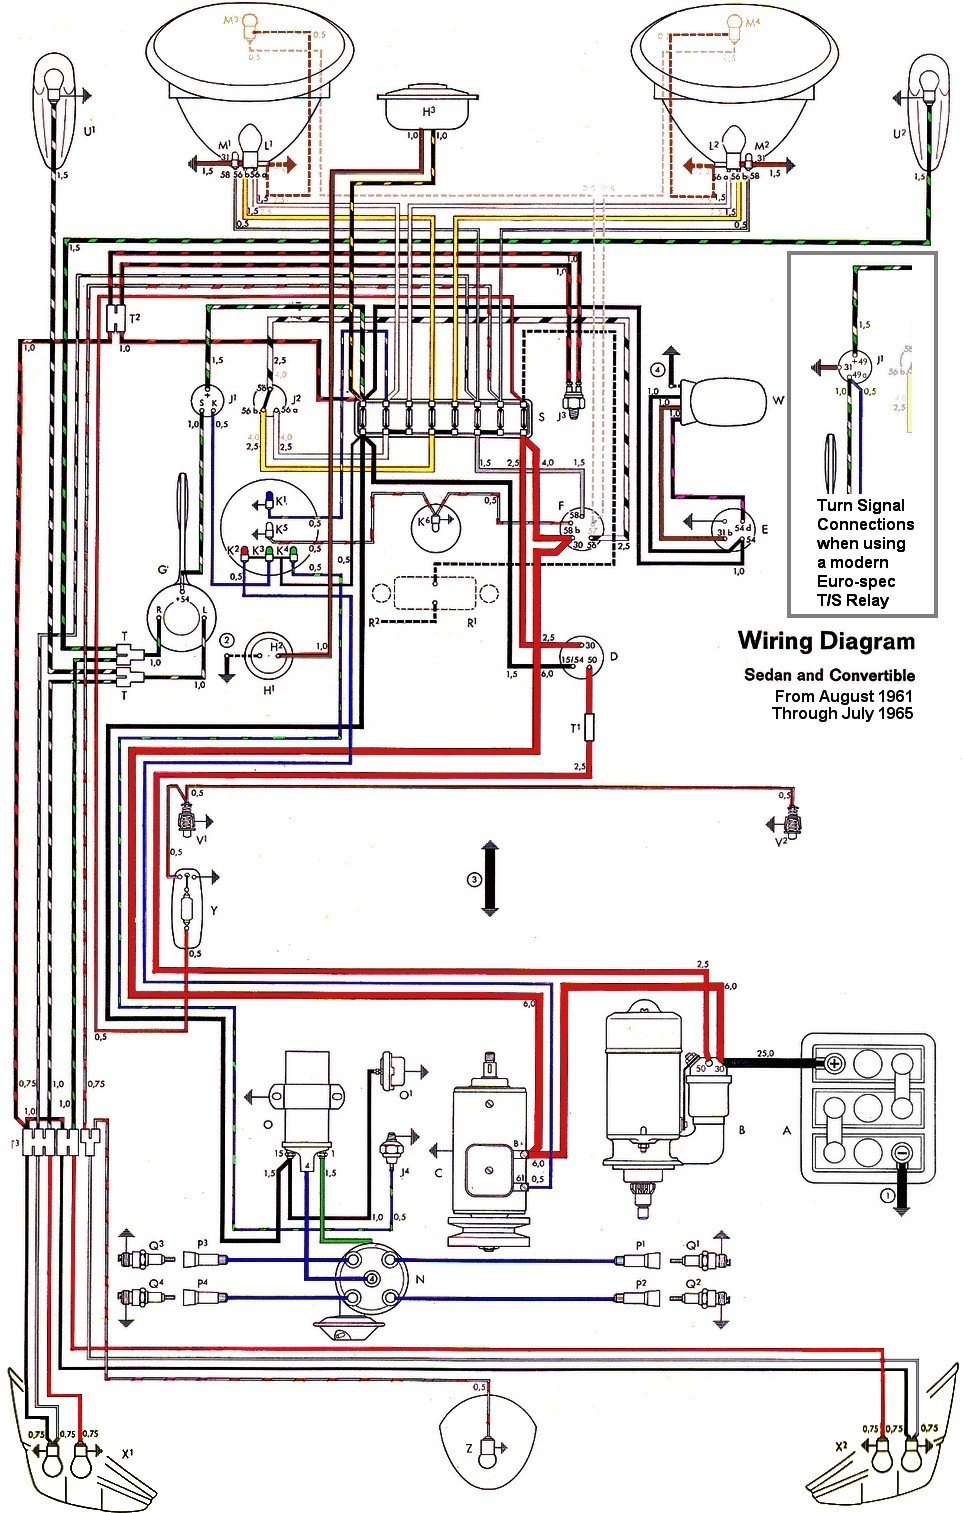 bug_62 65withinset wiring diagram vw beetle sedan and convertible 1961 1965 vw 73 vw beetle wiring diagram at nearapp.co